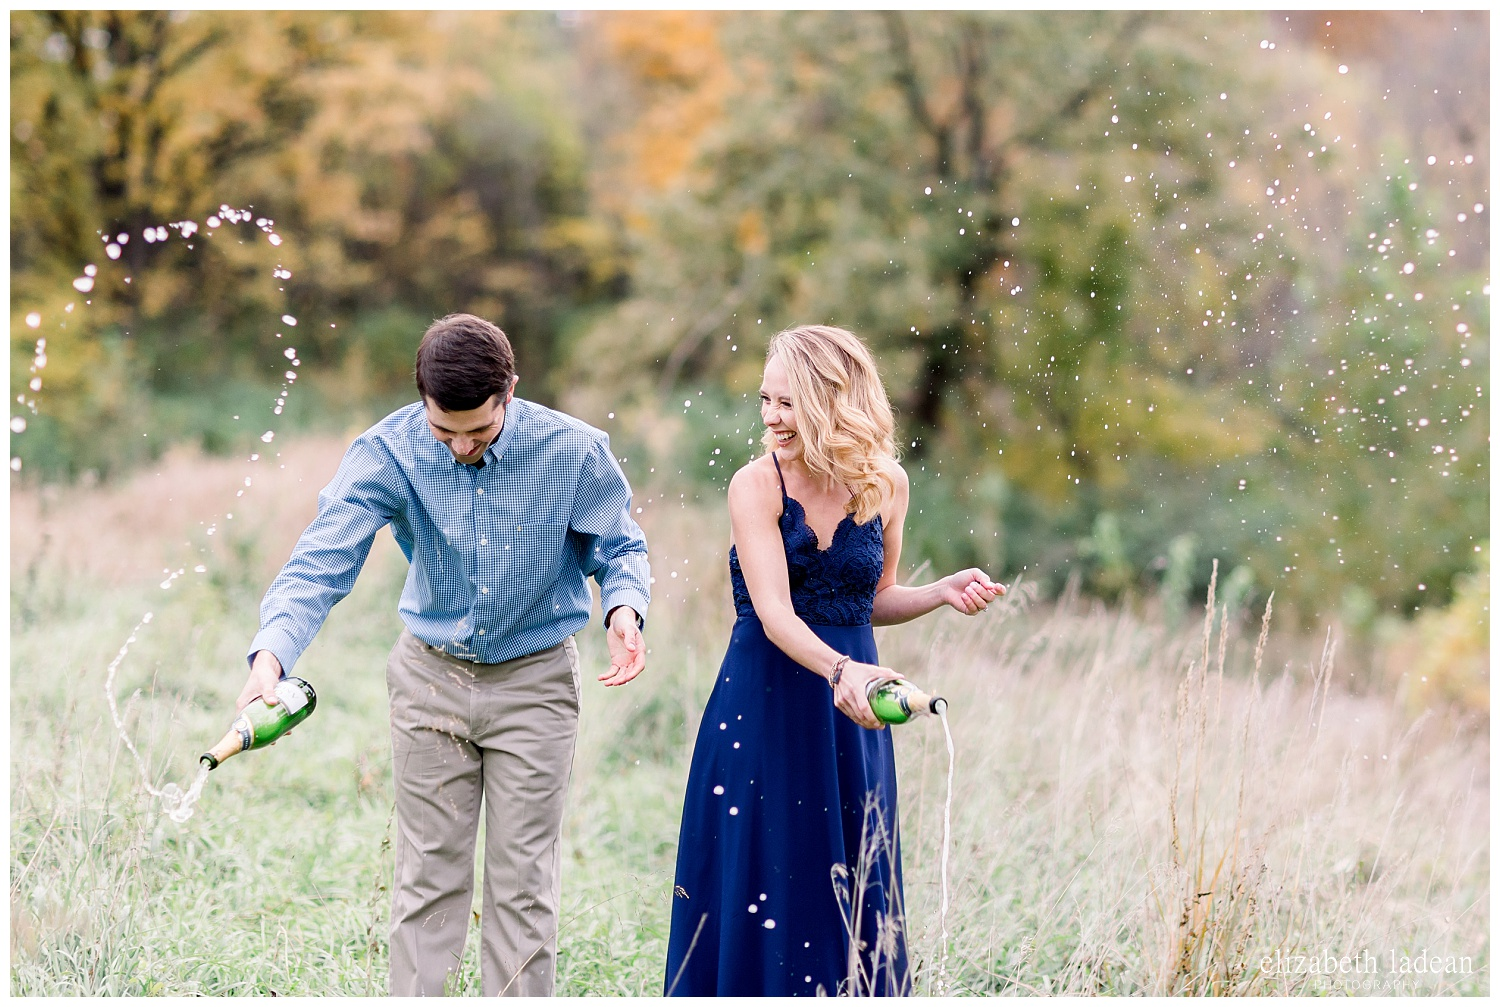 Colorful-Fall-Engagement-Photos-in-KC-C+B-2018-elizabeth-ladean-photography-photo_1809.jpg